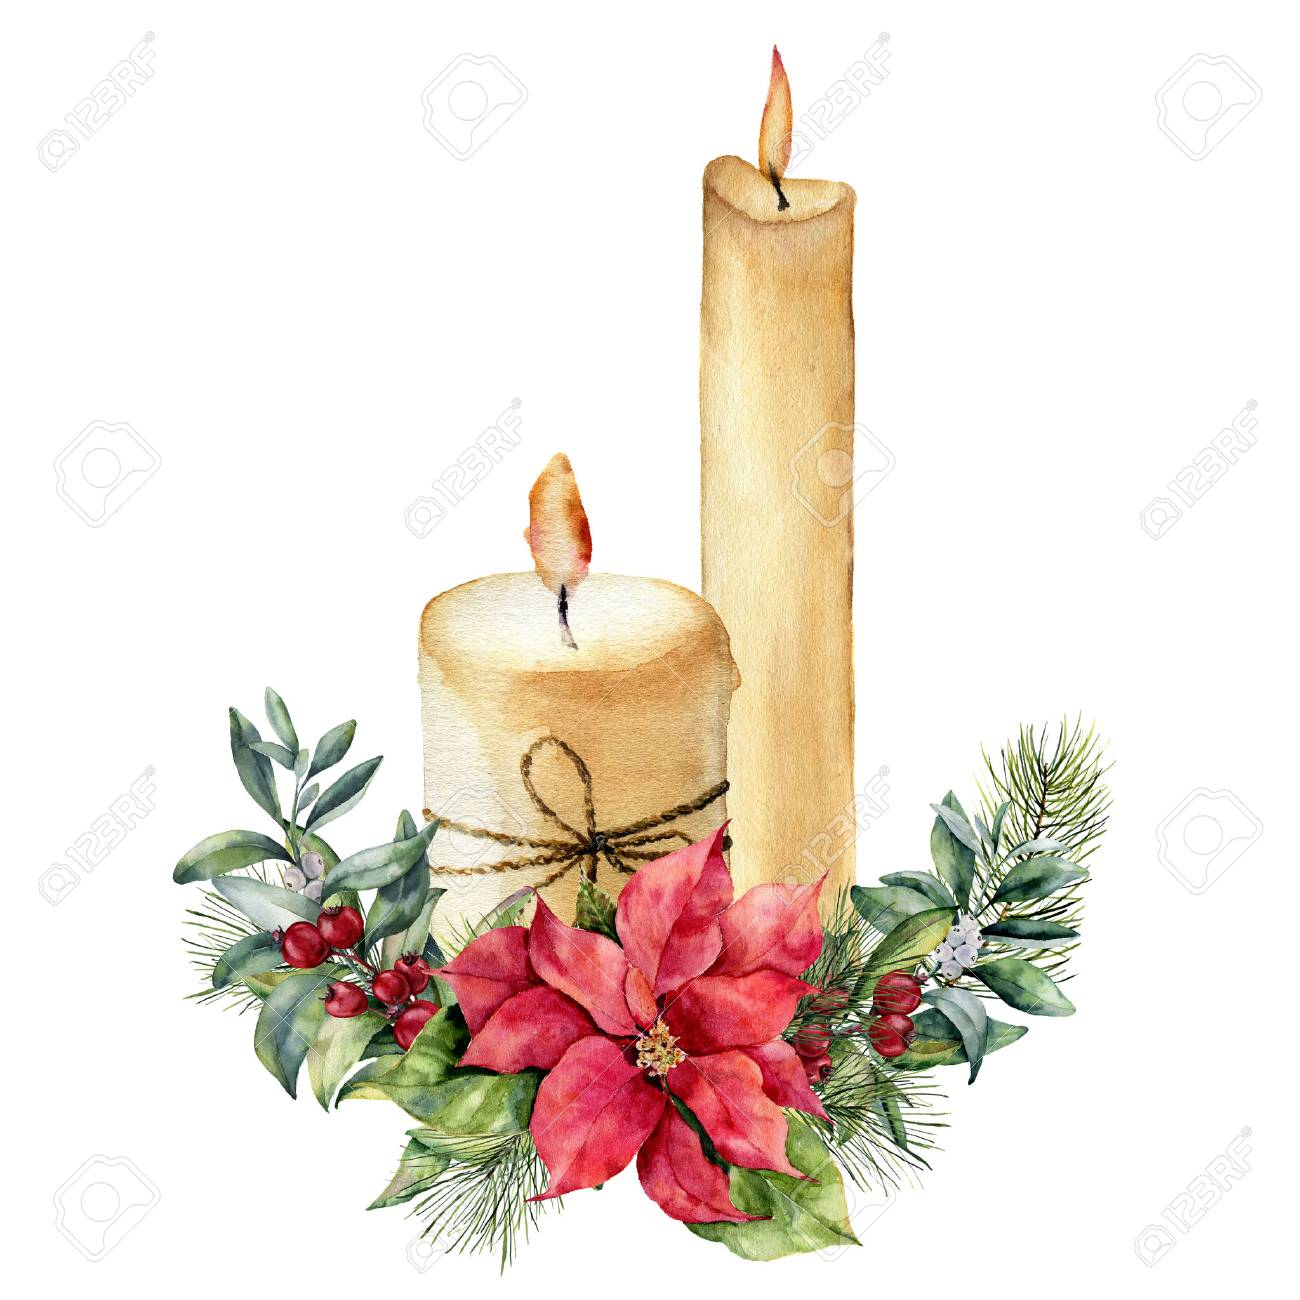 Watercolor candles with Christmas floral composition. - 90682177